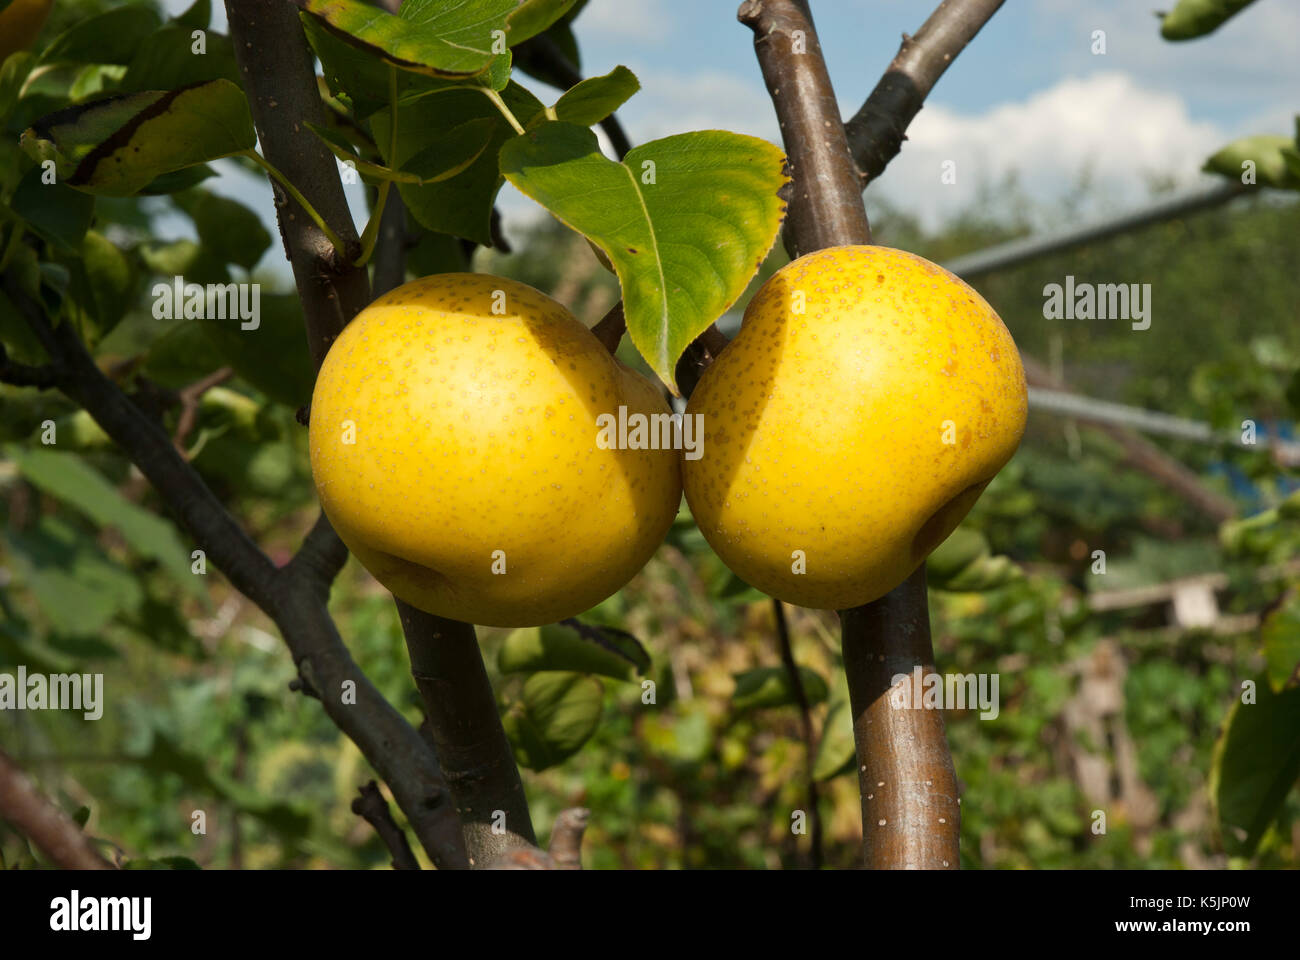 Shinko asian pear edible landscaping - Two Ripe Yellow Chinese Asian Pears Growing On A Branch Stock Image